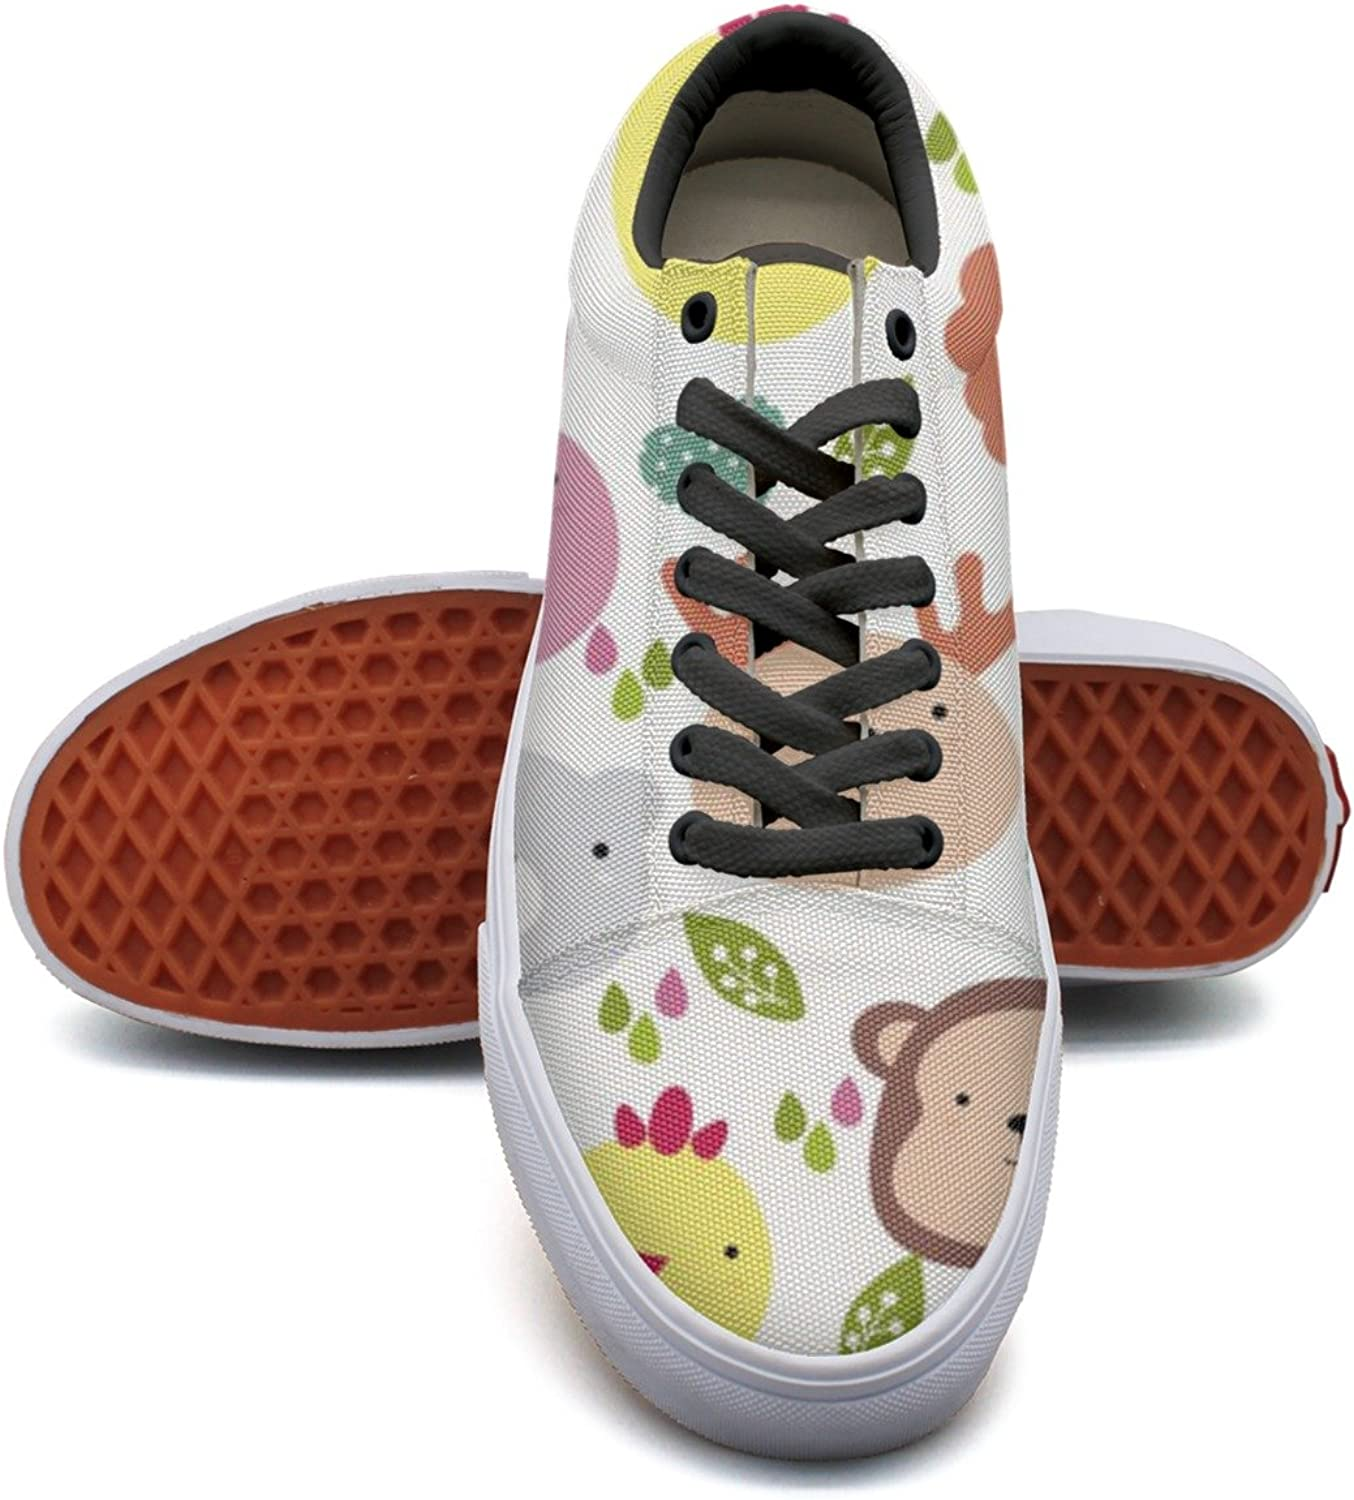 Cute Animals Head Background Women's Casual Sneakers shoes SlipOn Sports New Comfortable